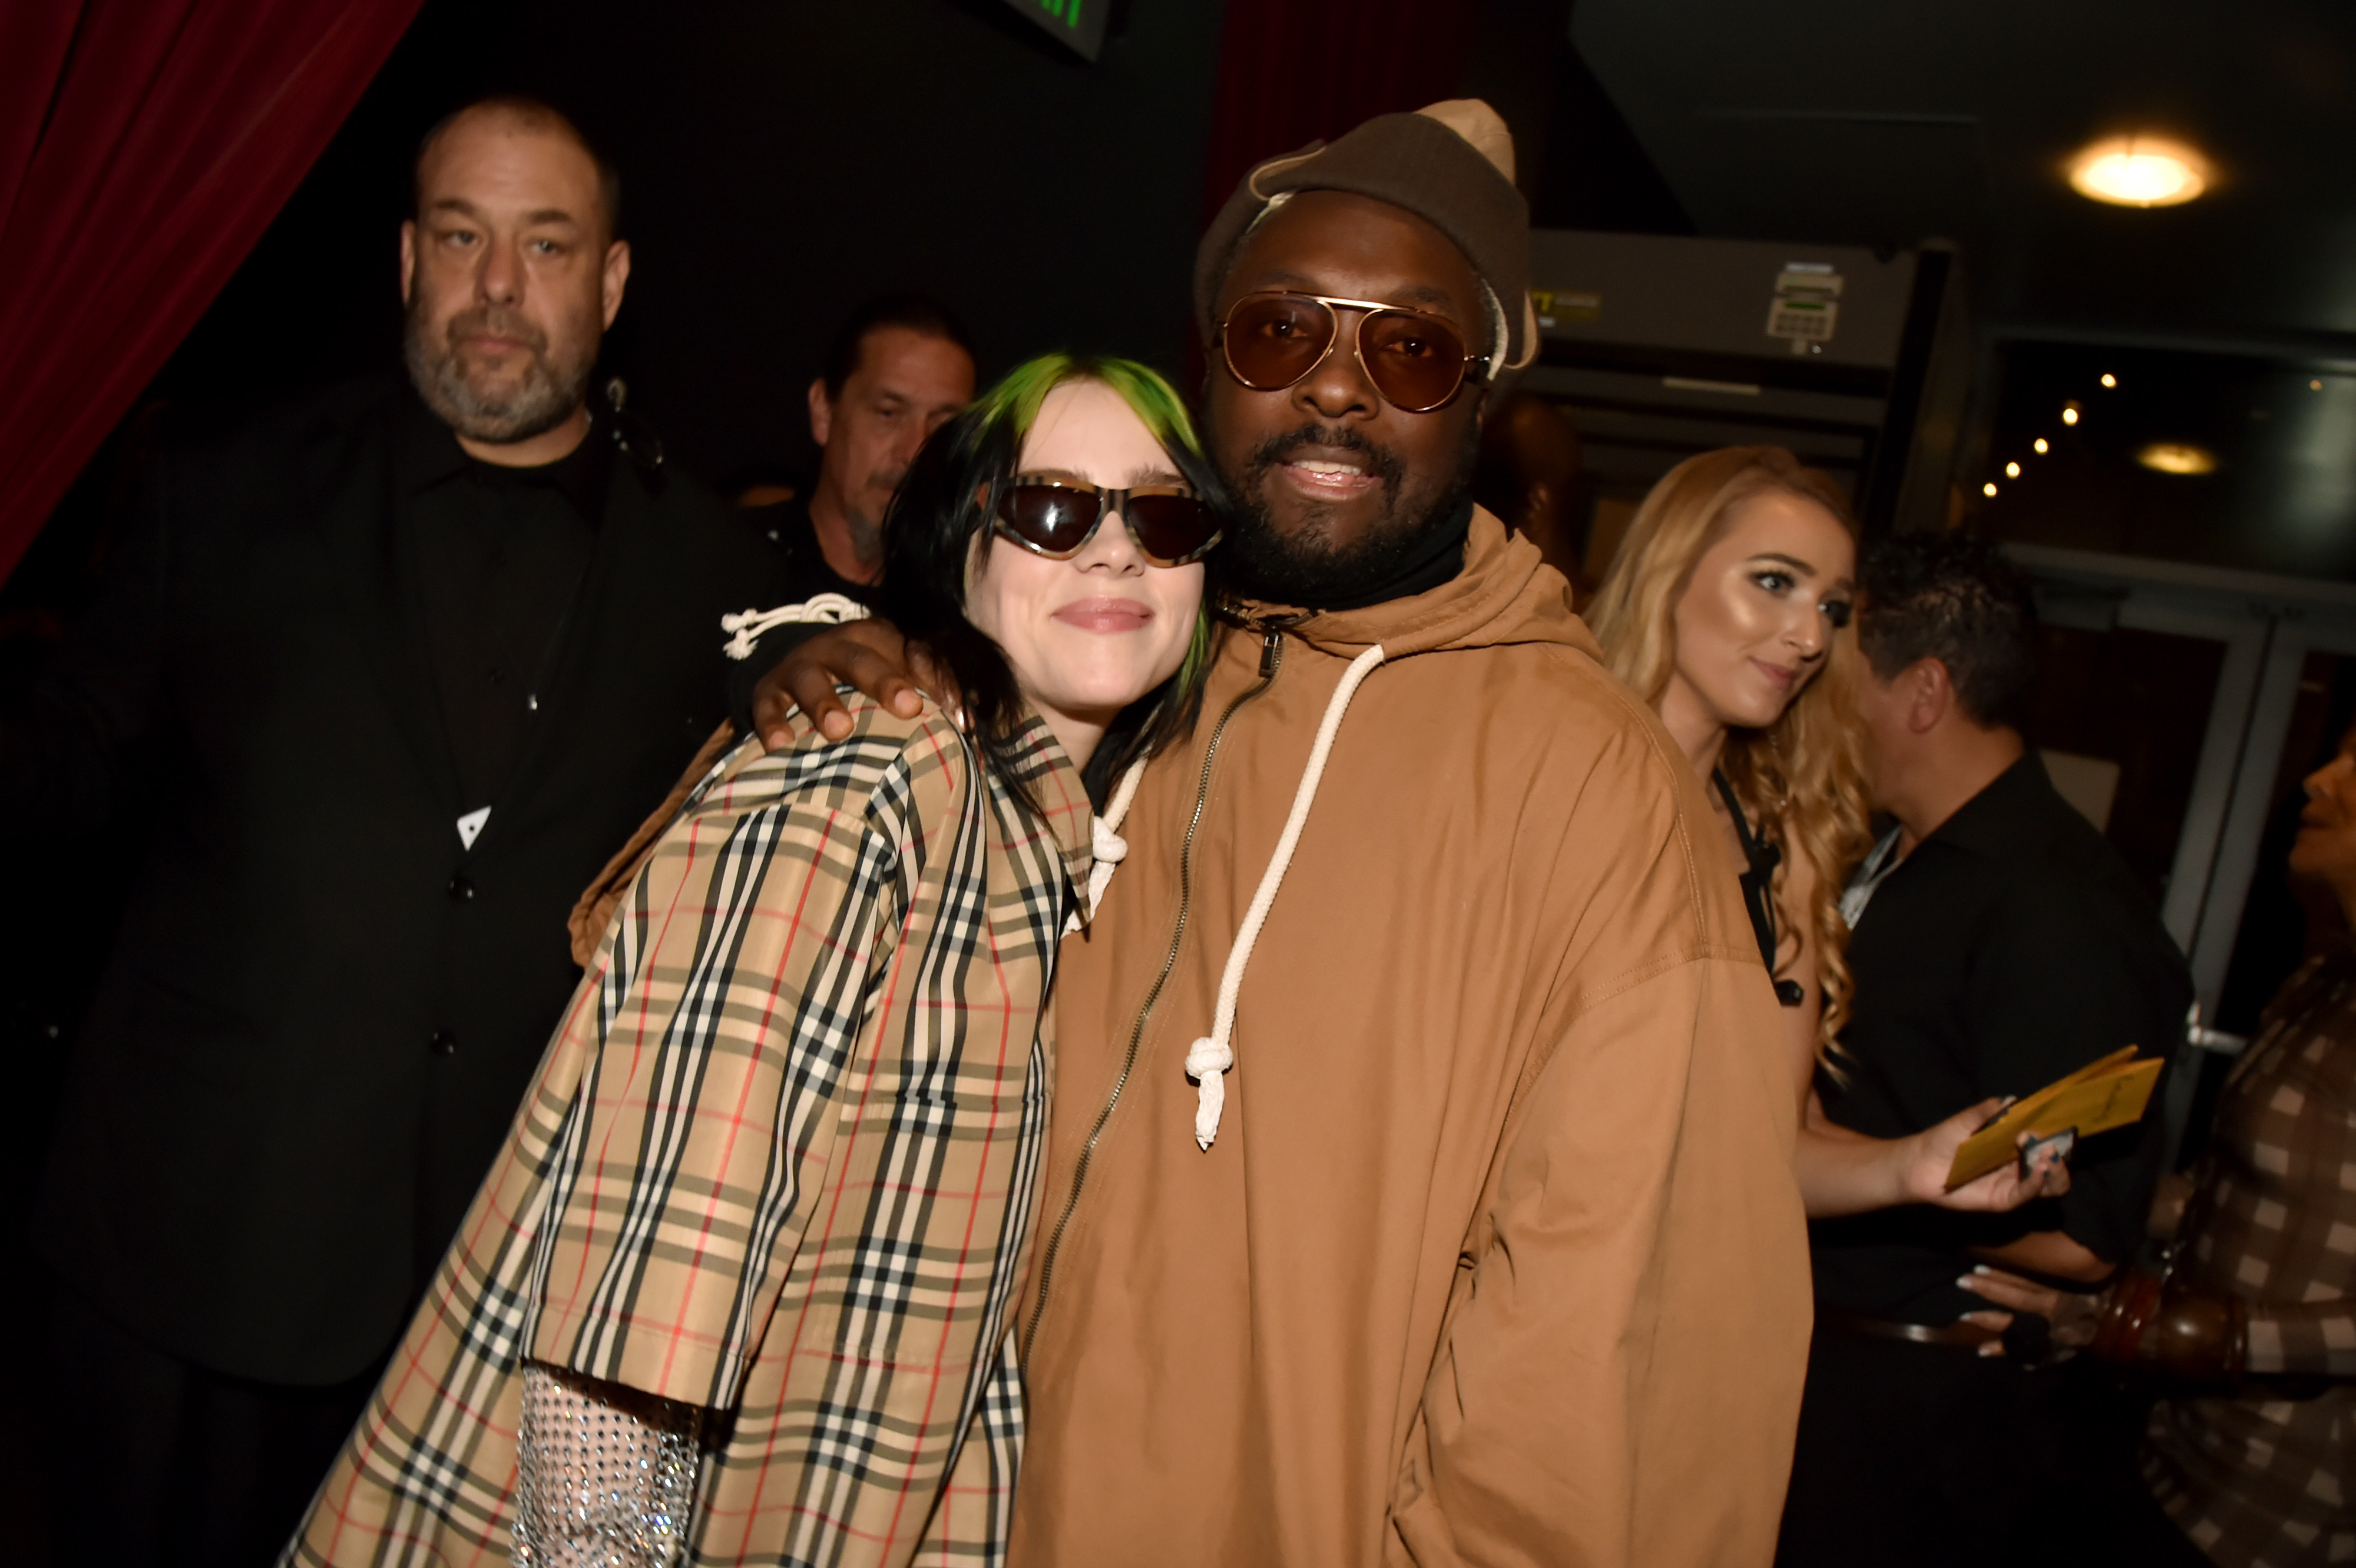 LOS ANGELES, CALIFORNIA - NOVEMBER 24: (L-R) Billie Eilish and will.i.am attend the 2019 American Music Awards at Microsoft Theater on November 24, 2019 in Los Angeles, California. (Photo by Jeff Kravitz/AMA2019/FilmMagic for dcp)